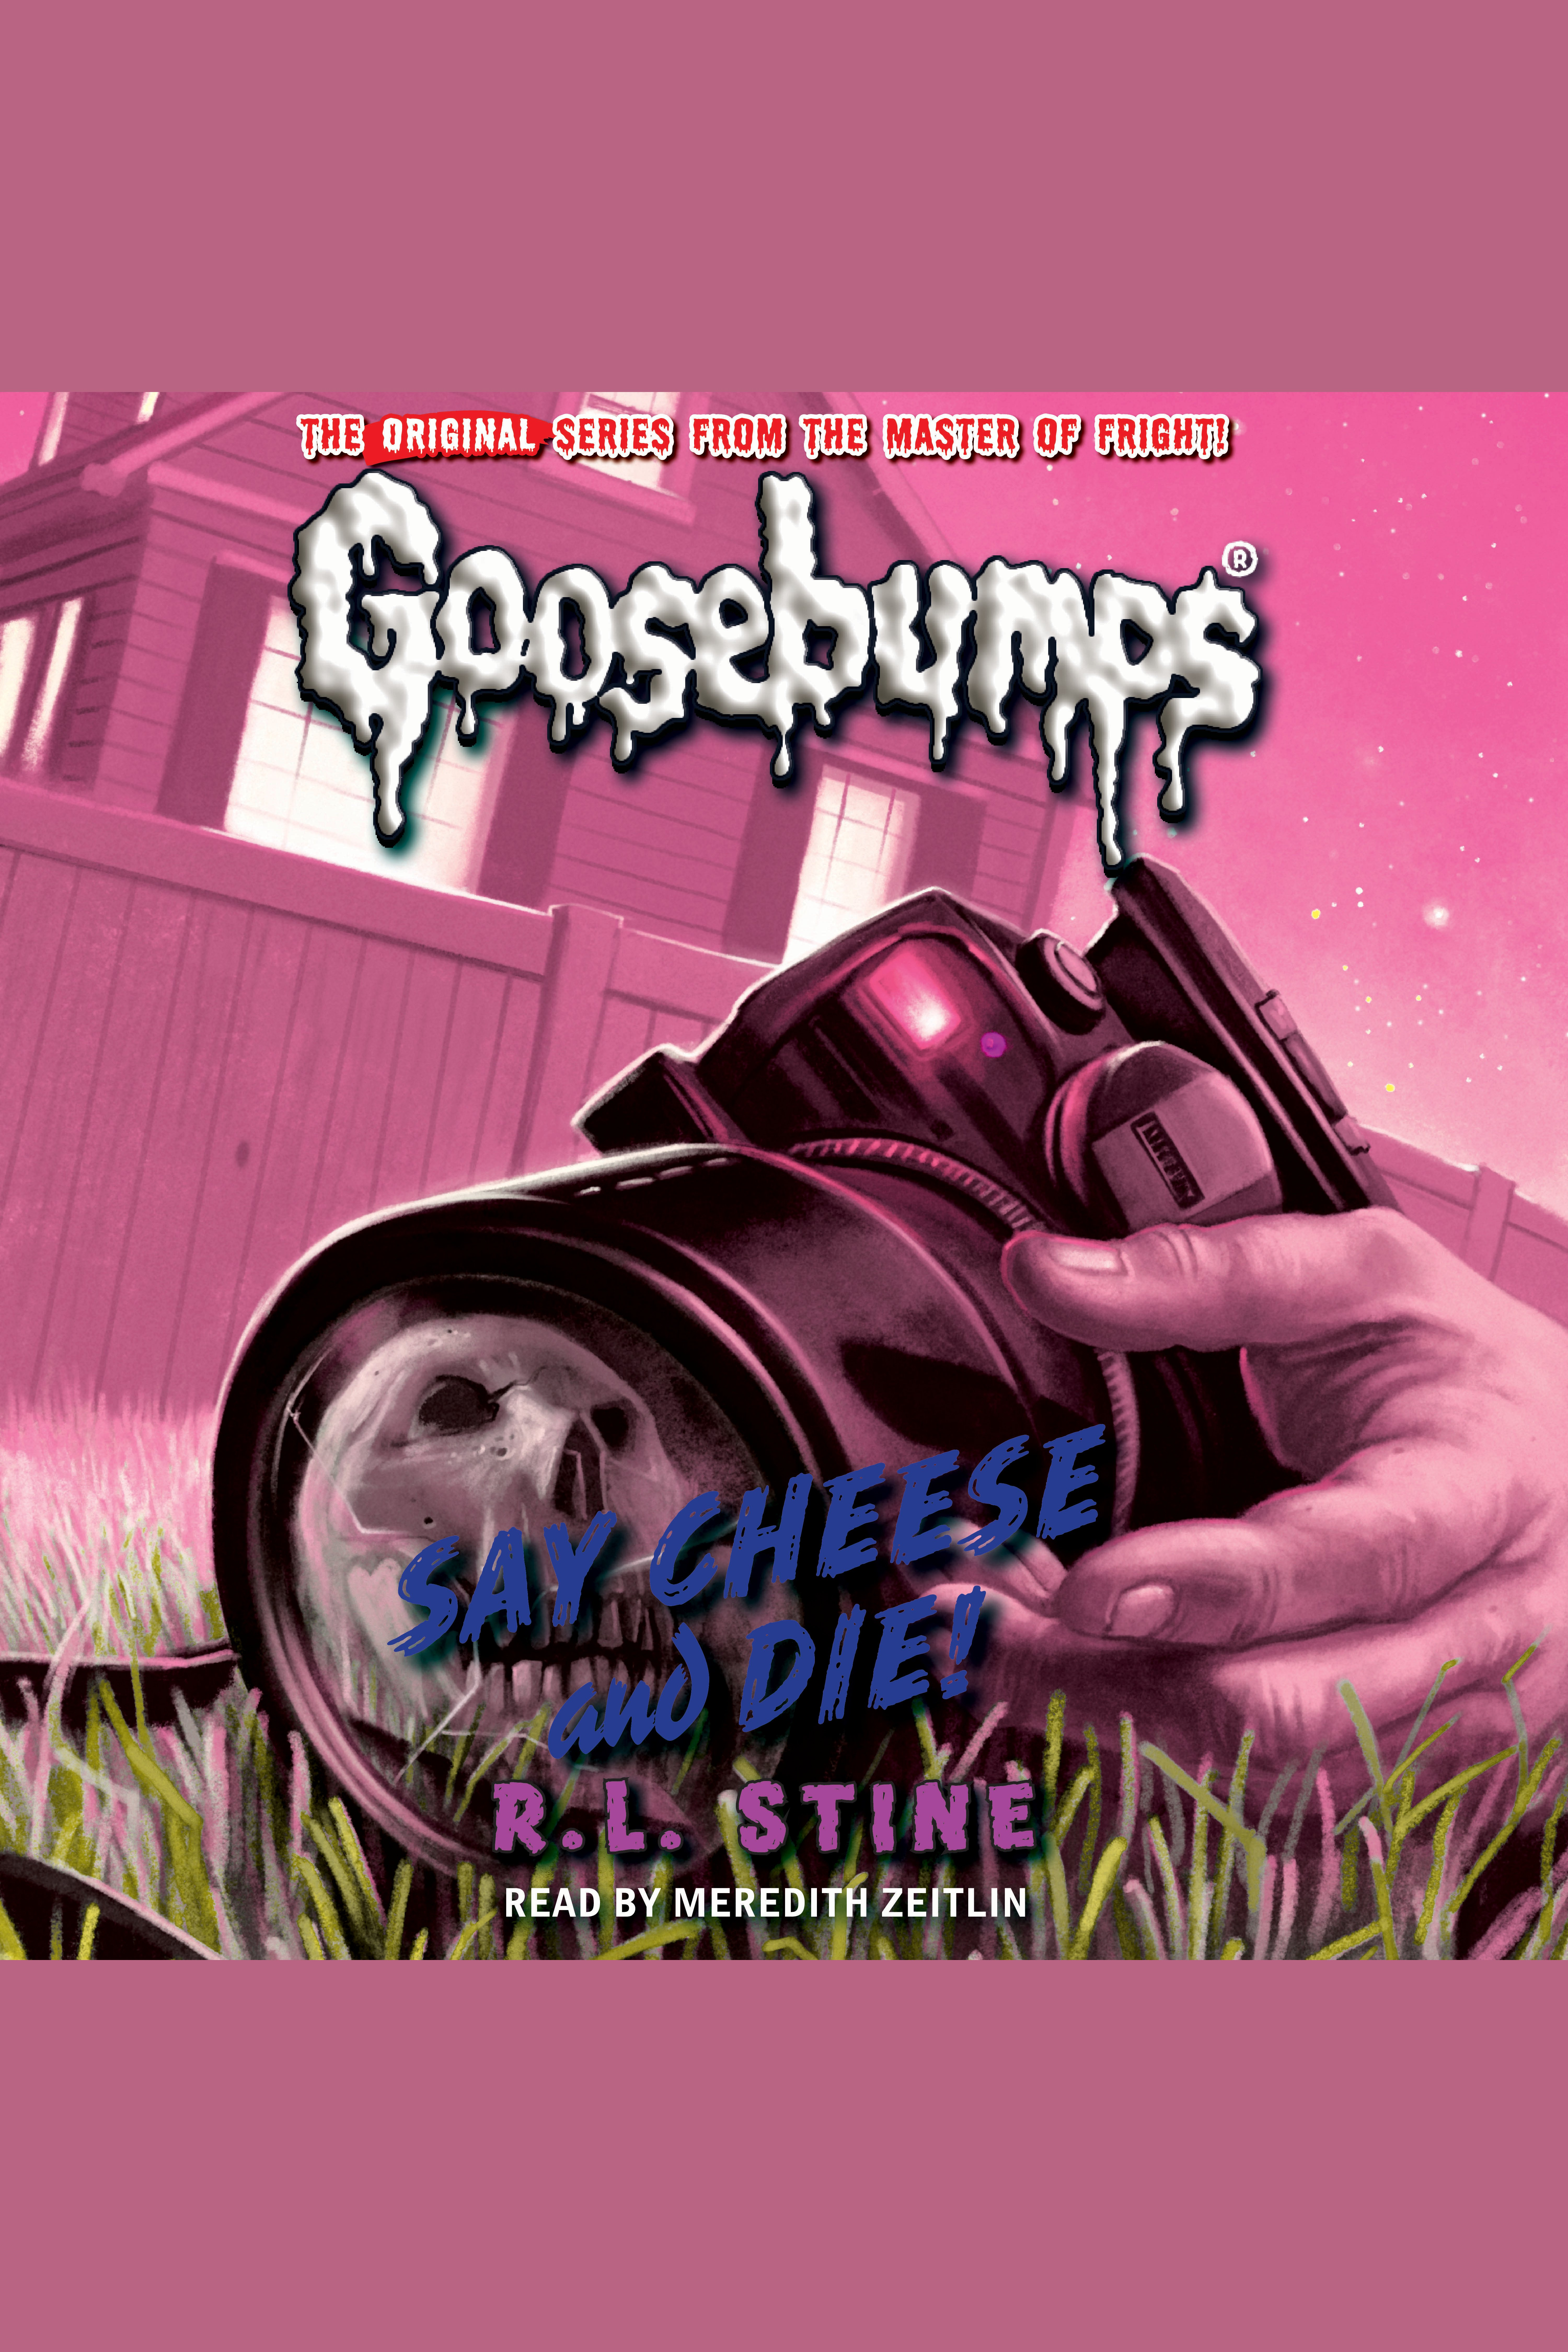 Classic Goosebumps Say Cheese and Die!